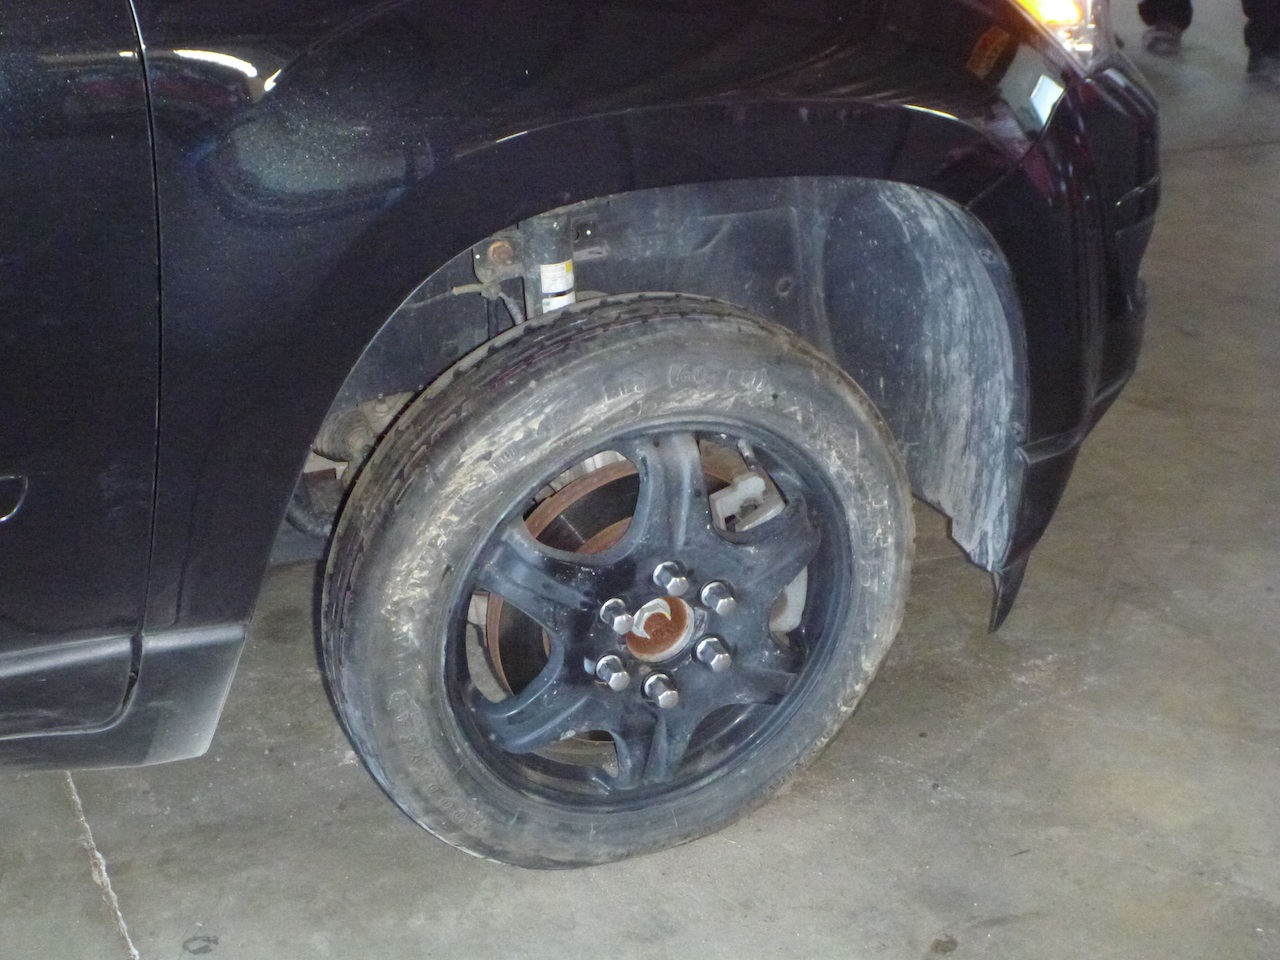 Spare Tire Went On For Three Days